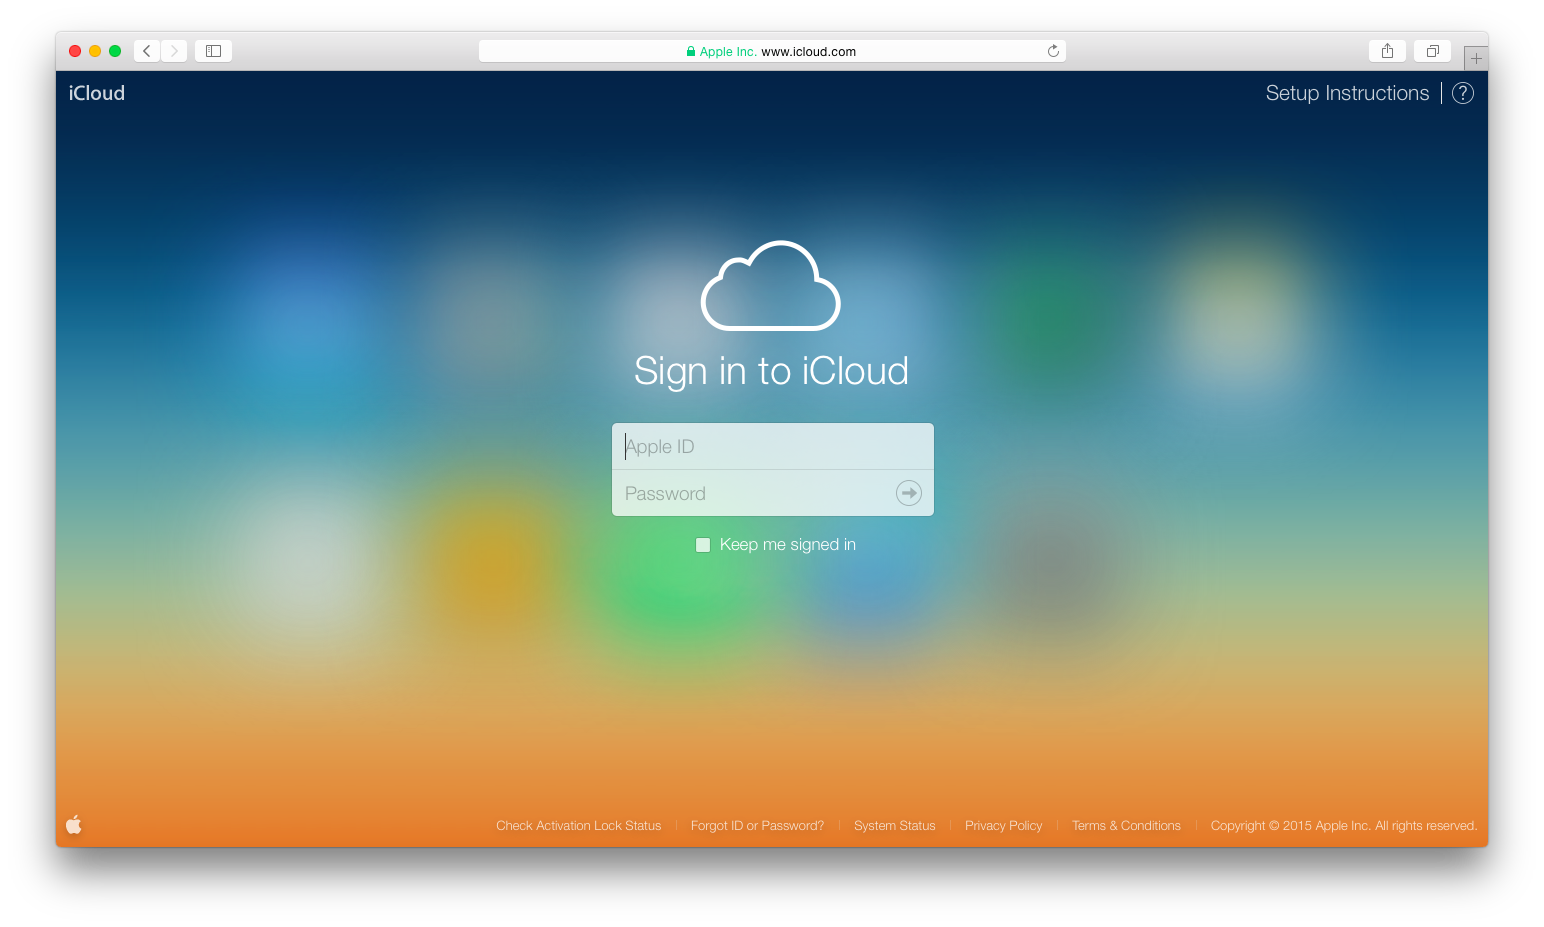 how to get photos from icloud to i photo